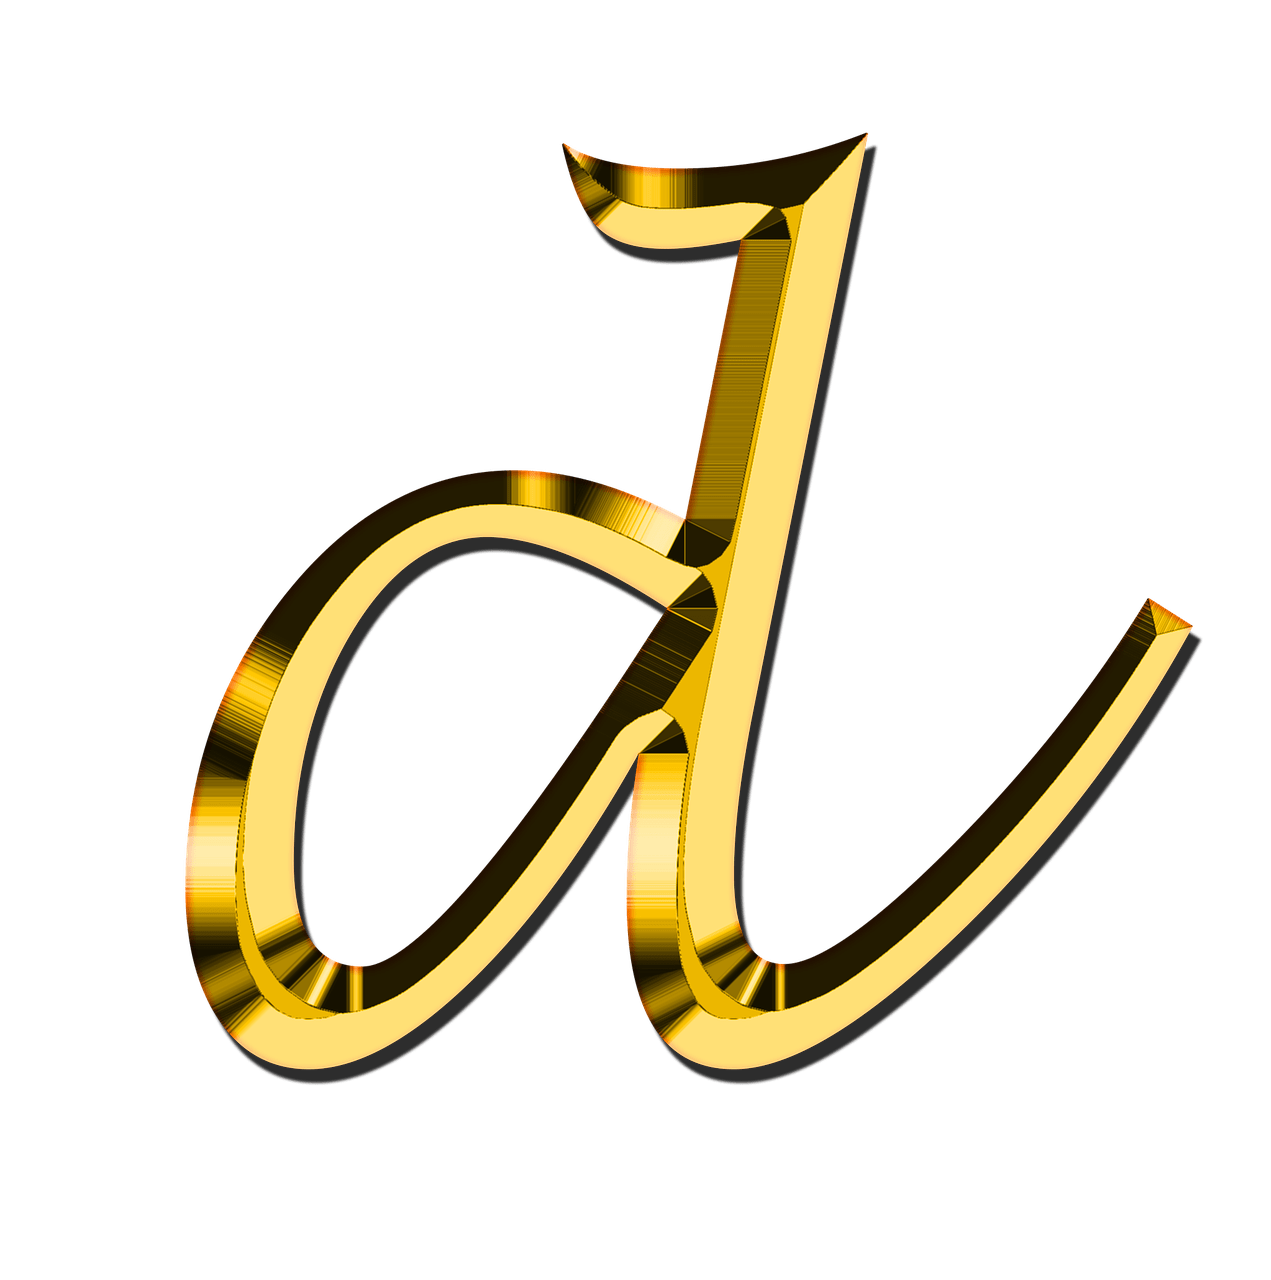 Small letter png stickpng. D transparent calligraphy picture download